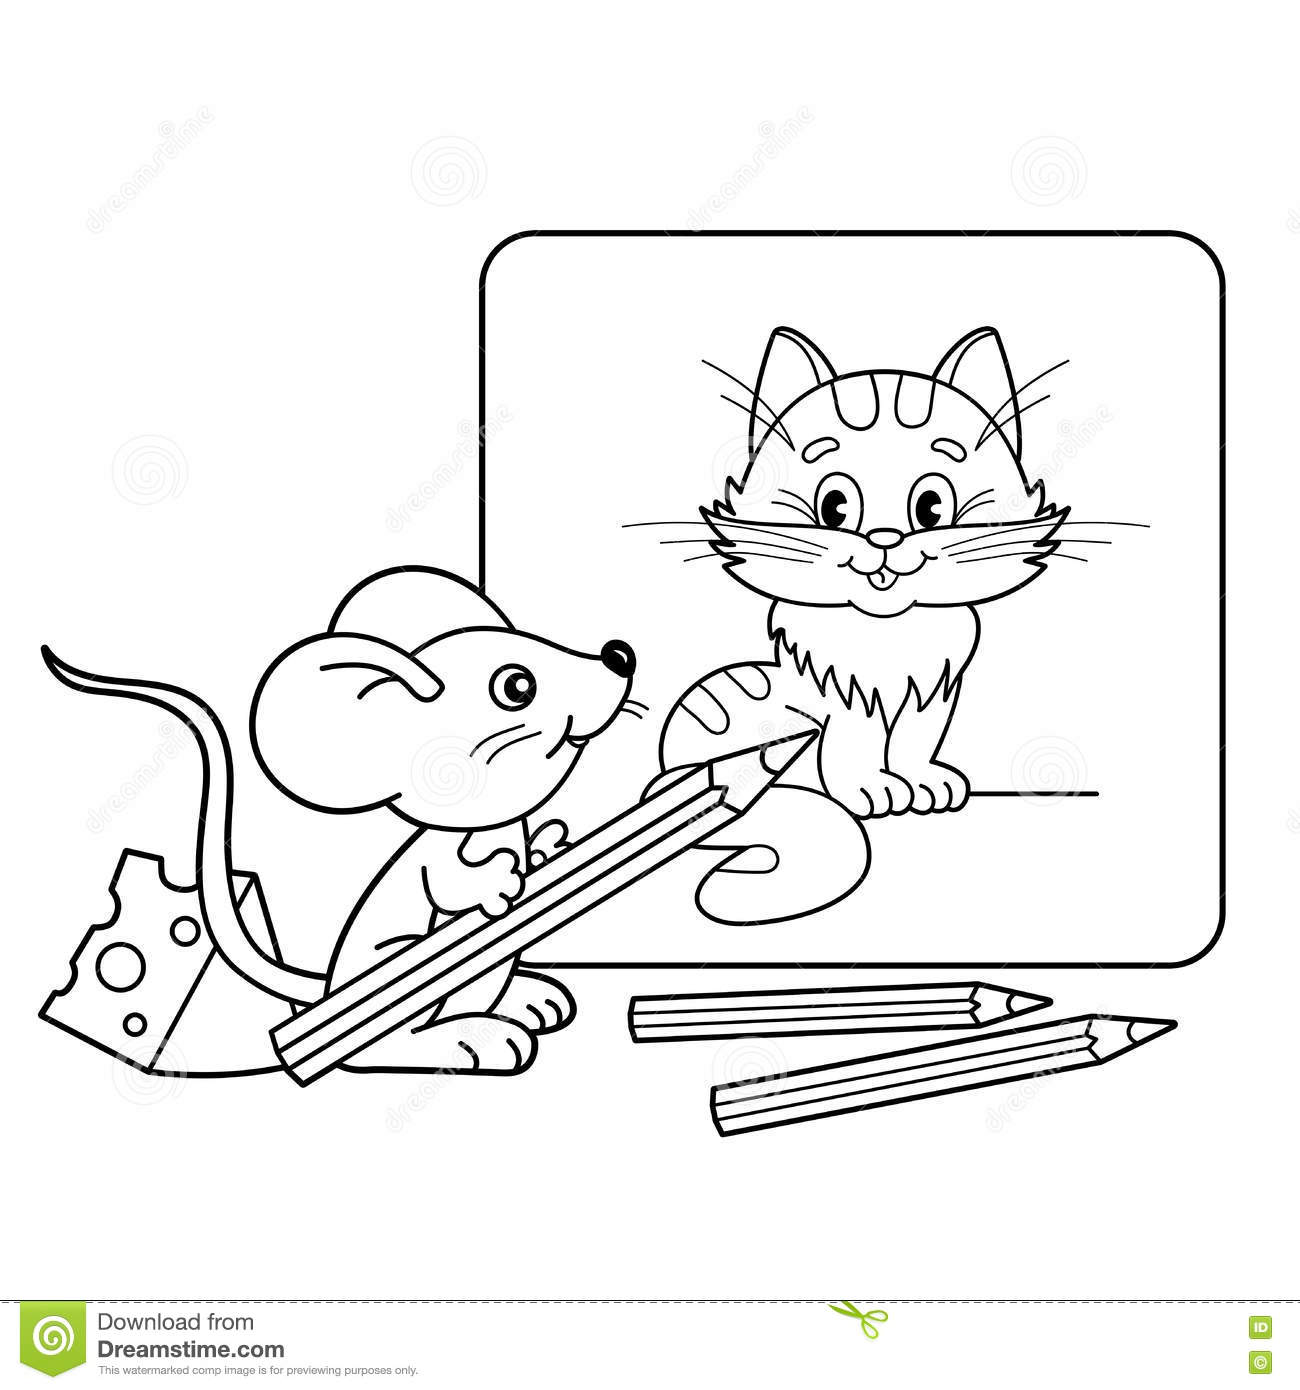 little mouse coloring pages - photo#24